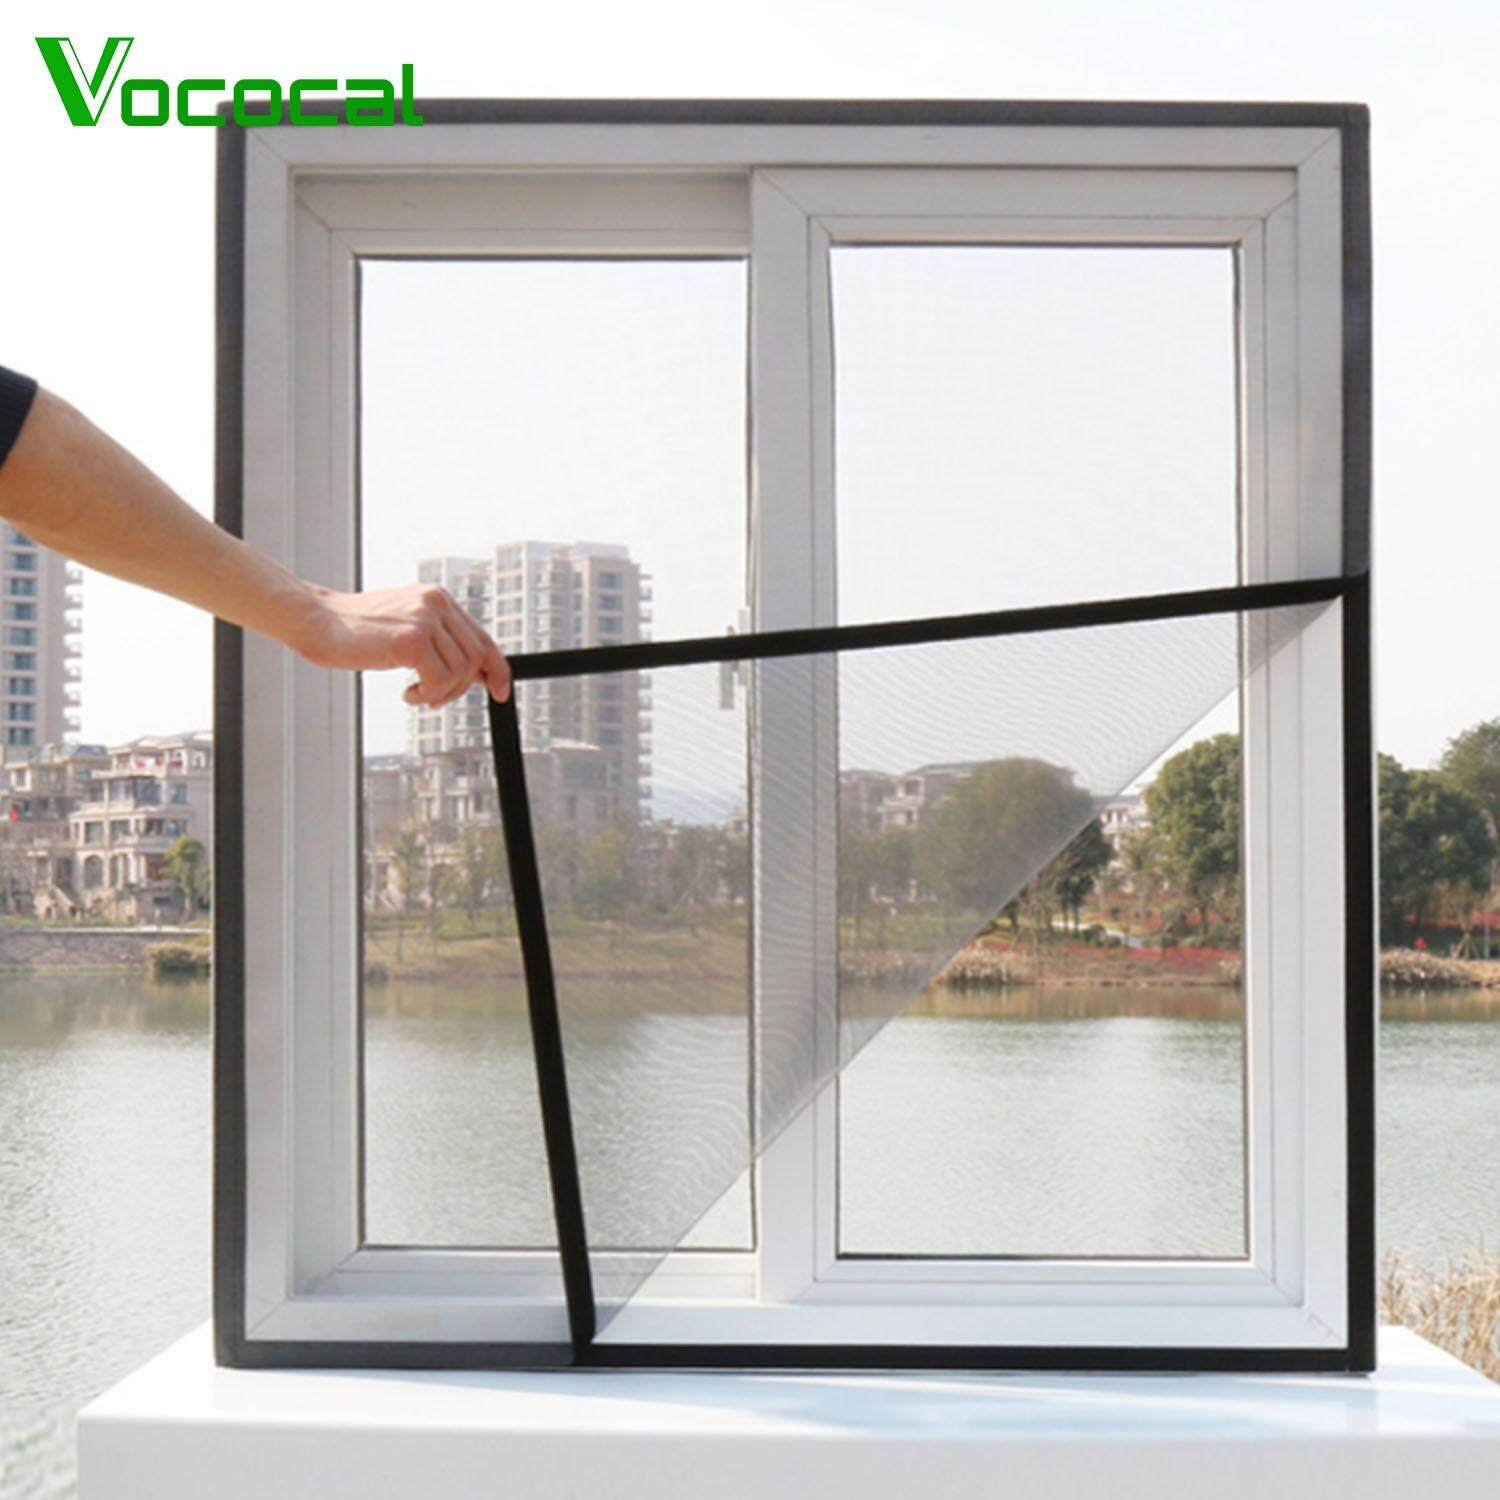 【In stock】Vococal 2PCS 1.5 x 2m DIY Self-adhesive Window Screen Netting Mesh Curtain with Hook and Loop Fastener Tape Invisible Insect Mesh Kit Mosquito Bee Close Mosquito Net Protector for Windows White/Black